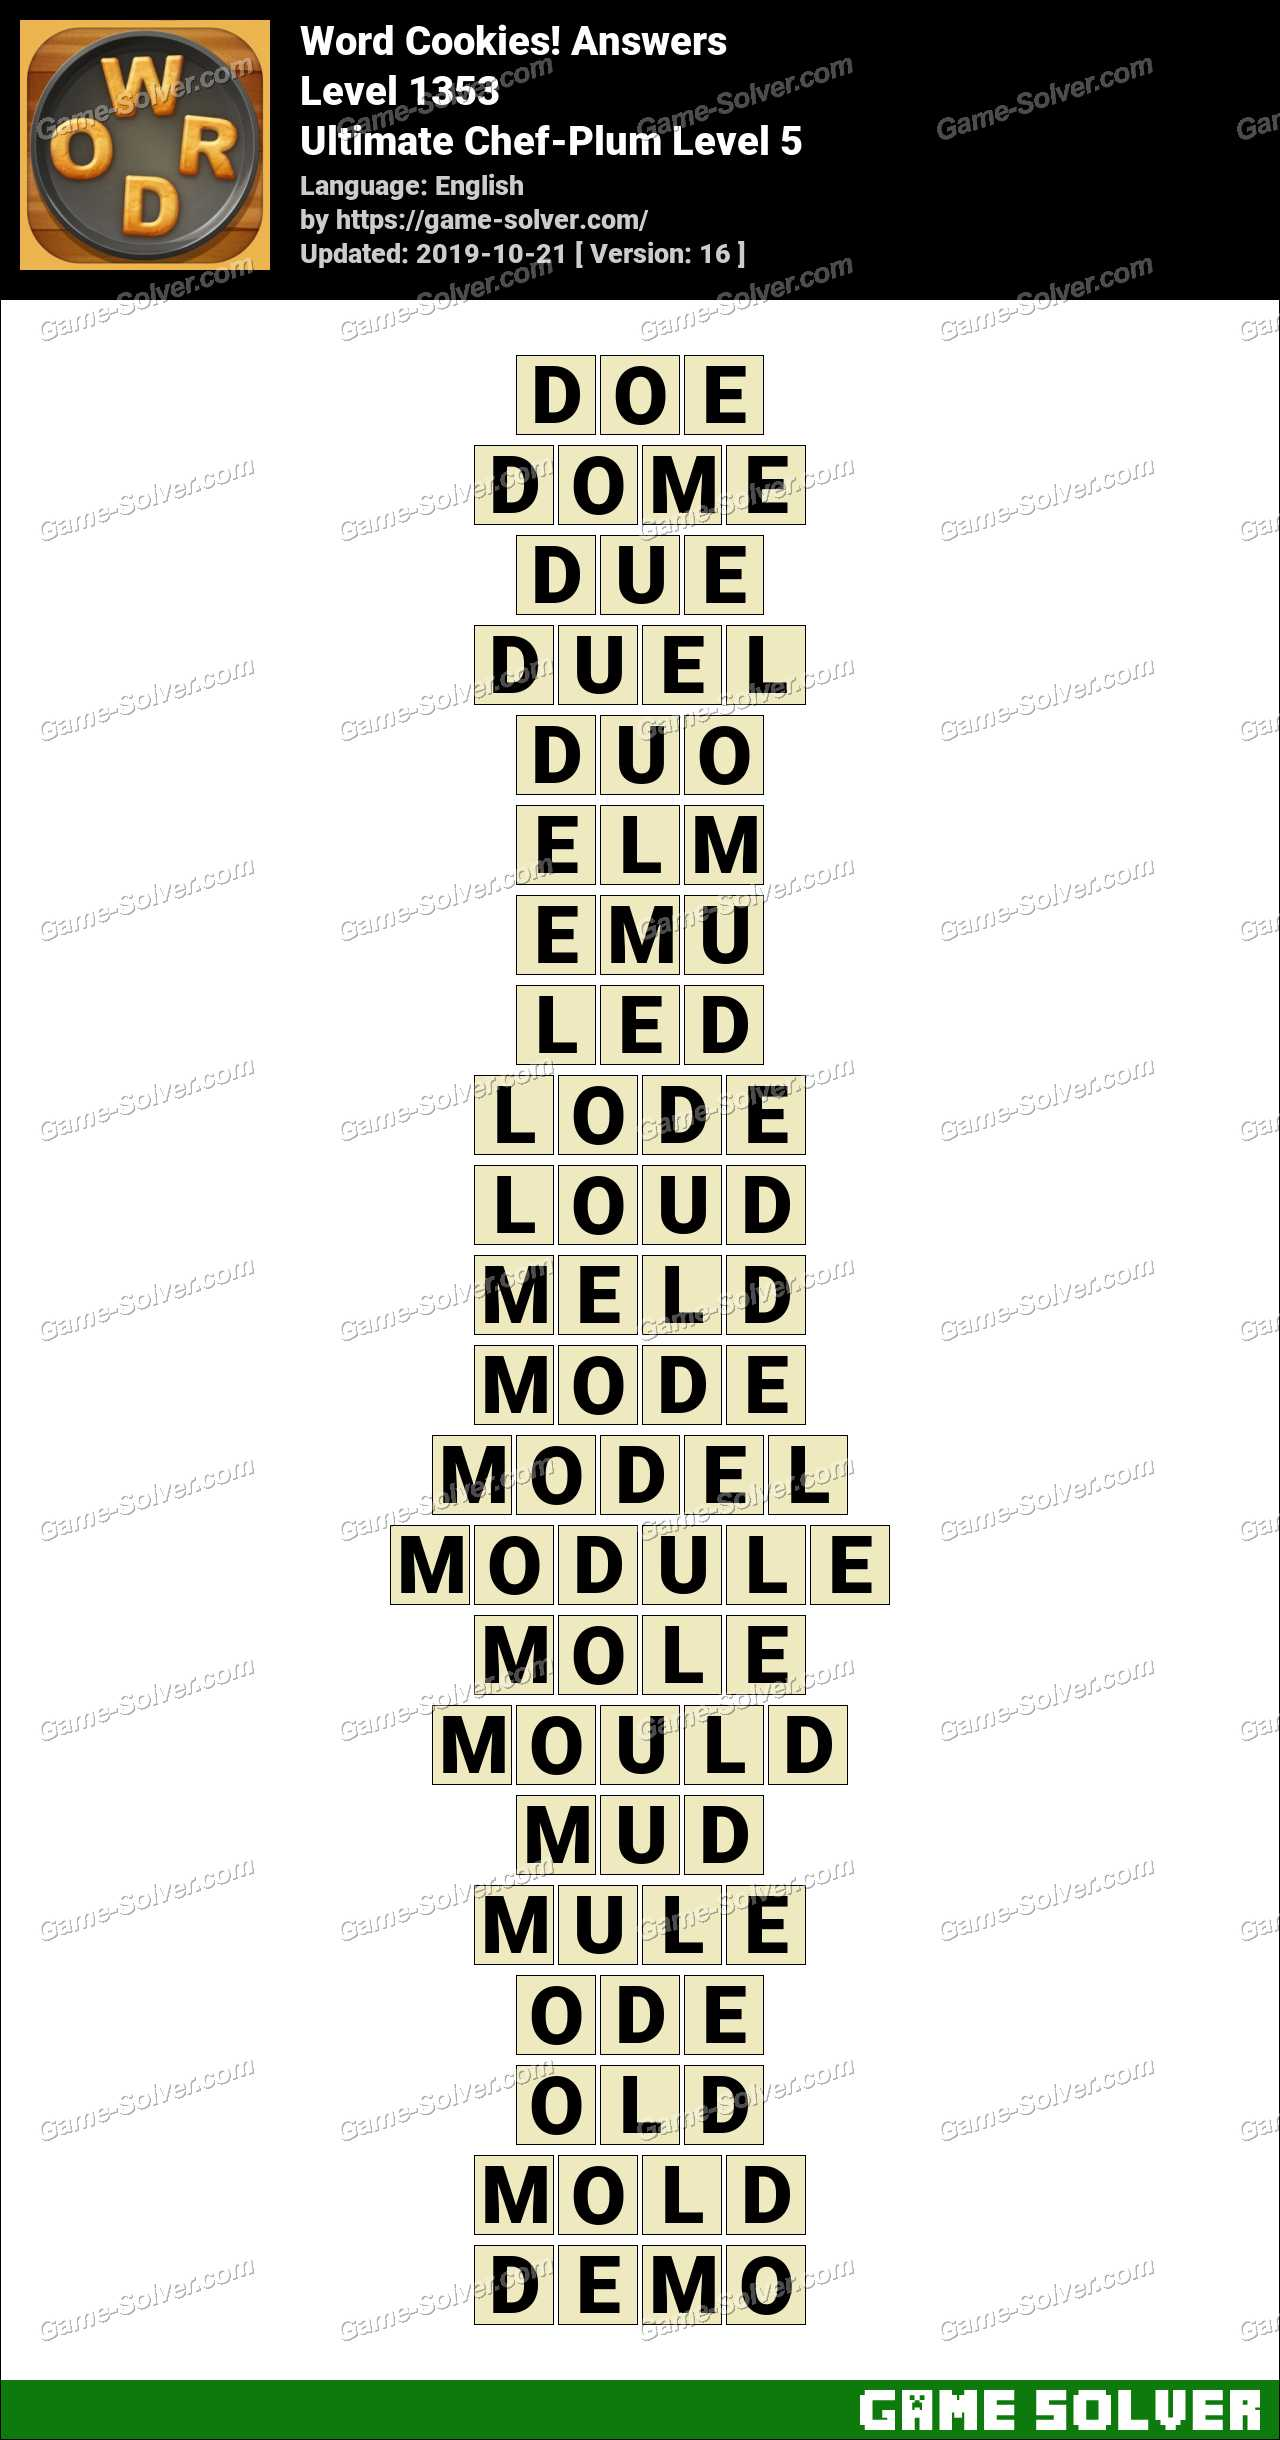 Word Cookies Ultimate Chef-Plum Level 5 Answers